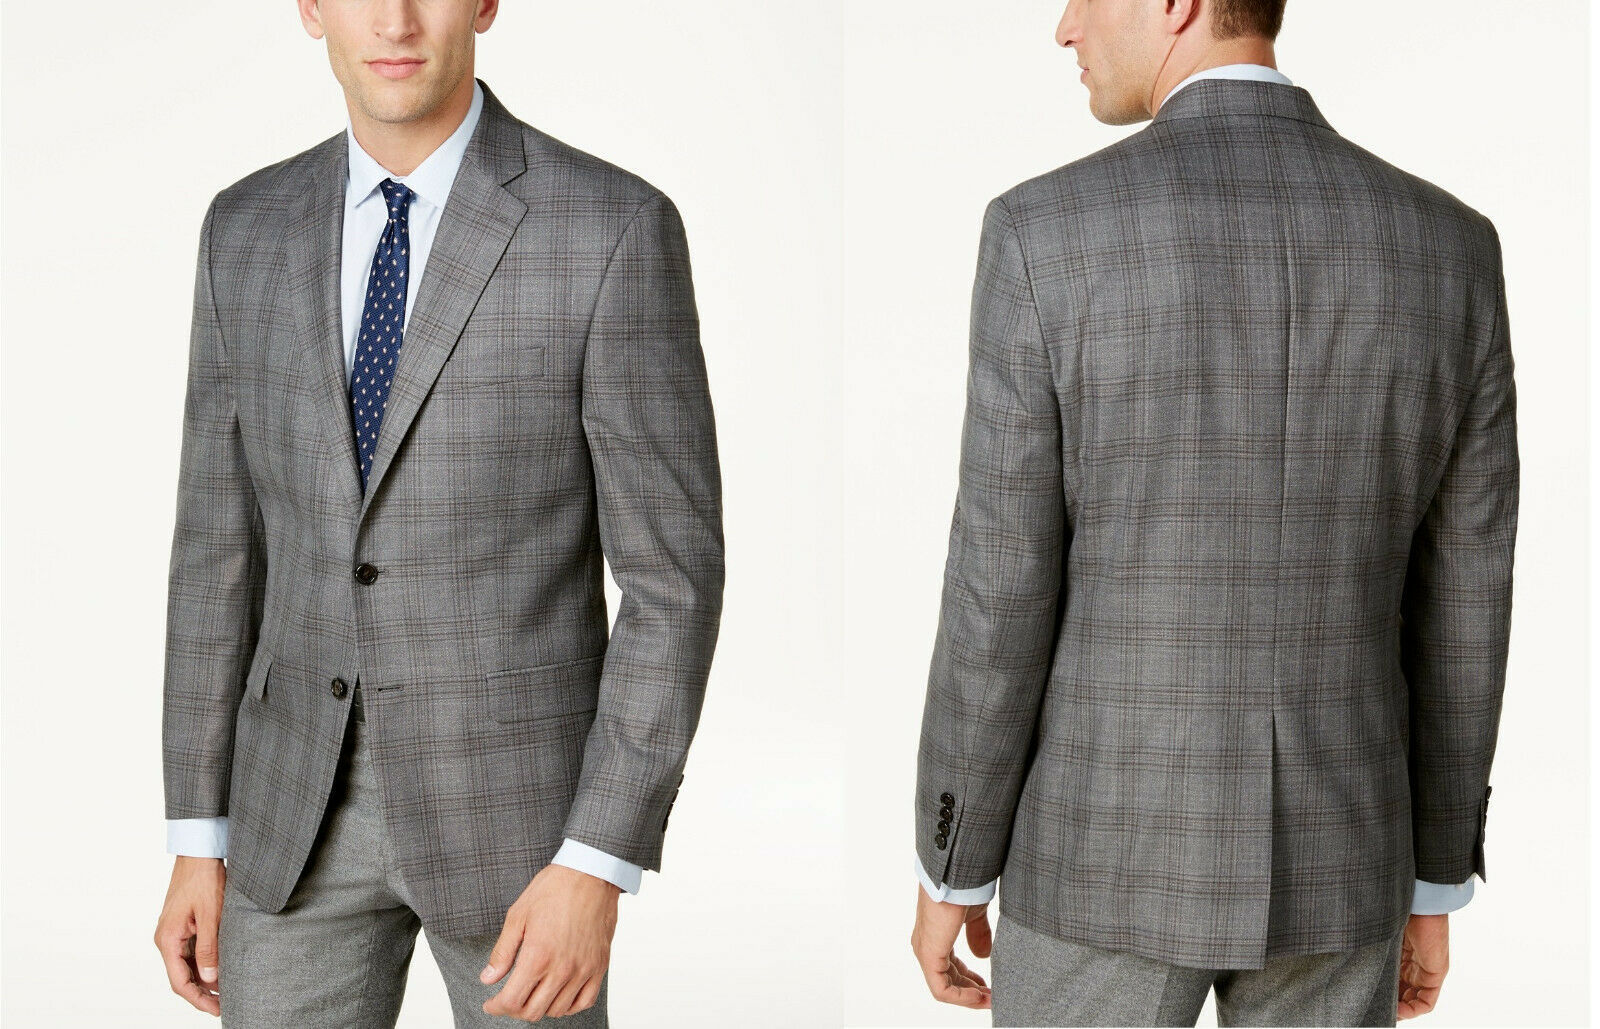 Primary image for Lauren Ralph Lauren  Classic-Fit Gray Plaid Ultraflex Sport Coat, Size 38 R,$350